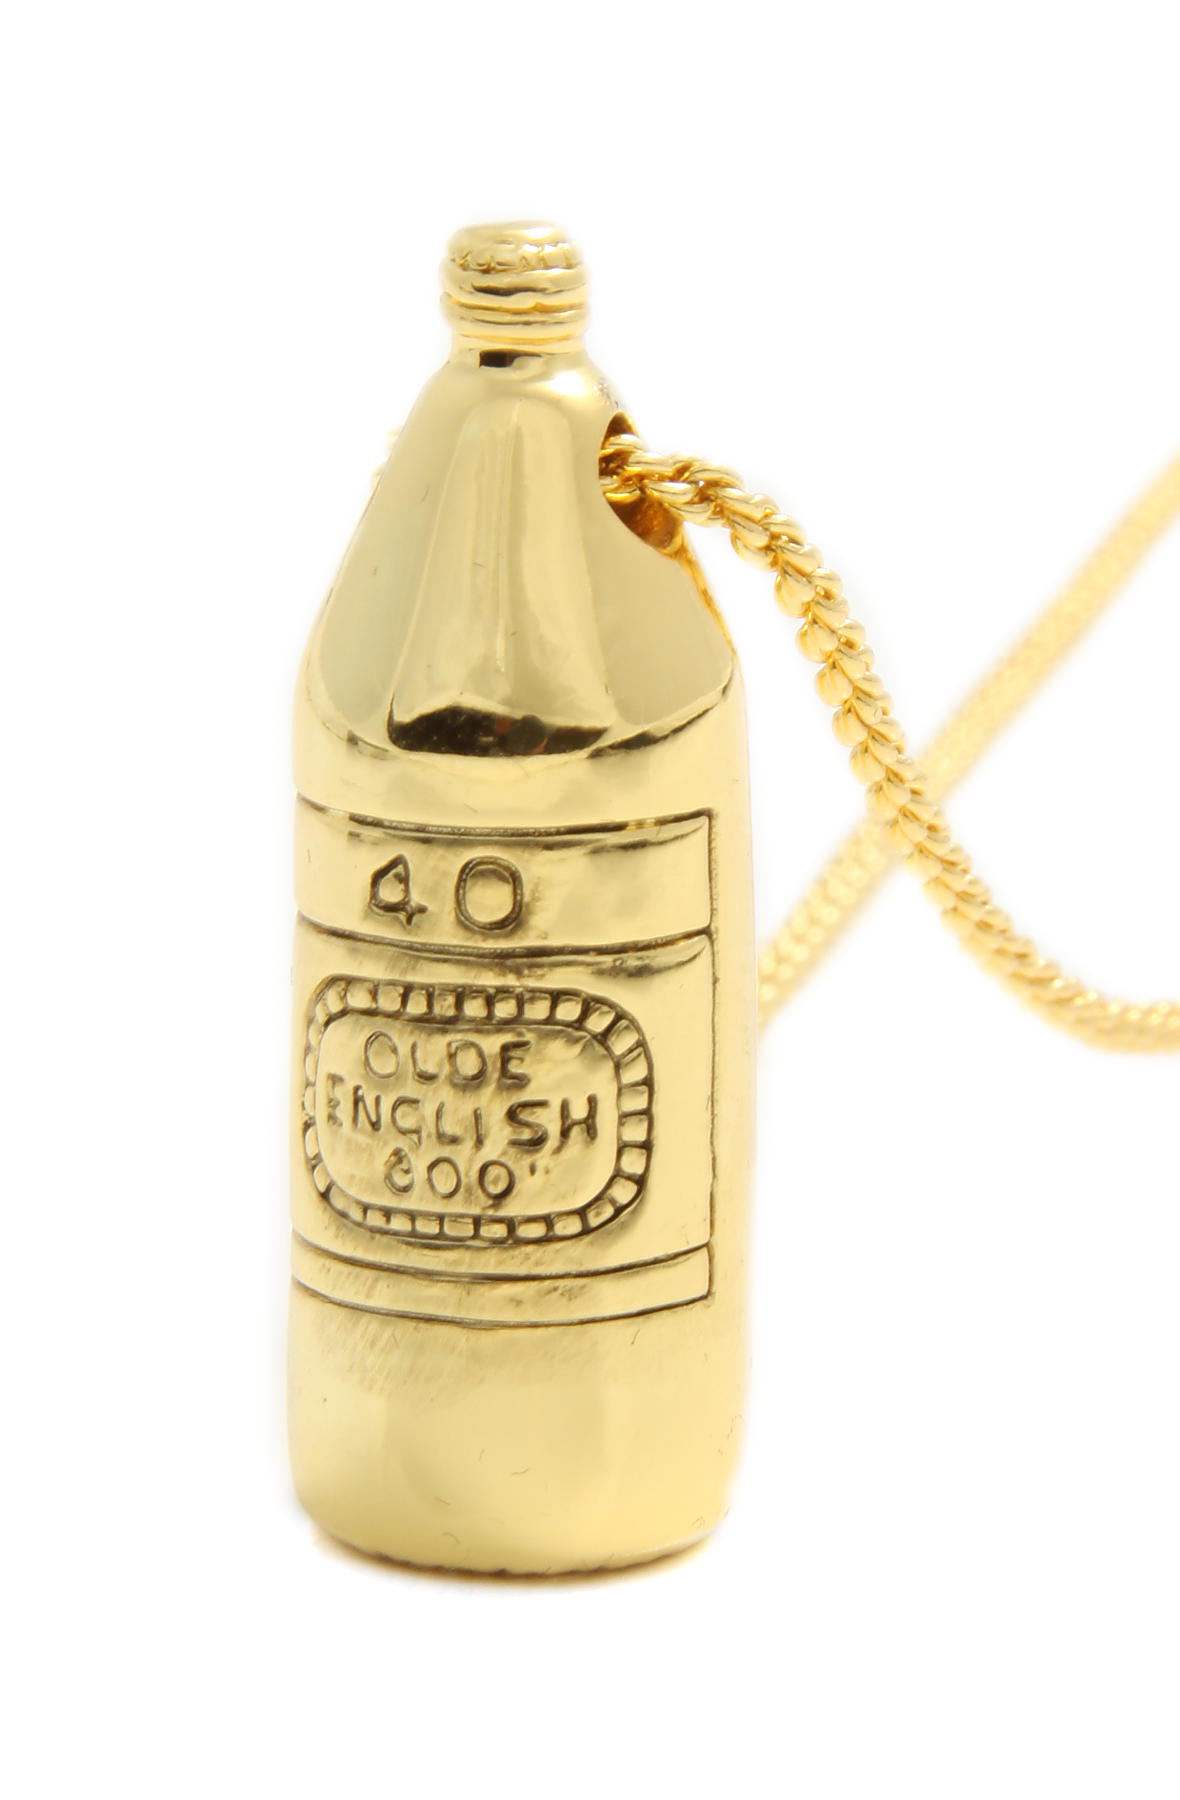 Han Cholo Necklace 40oz Pendant in Gold